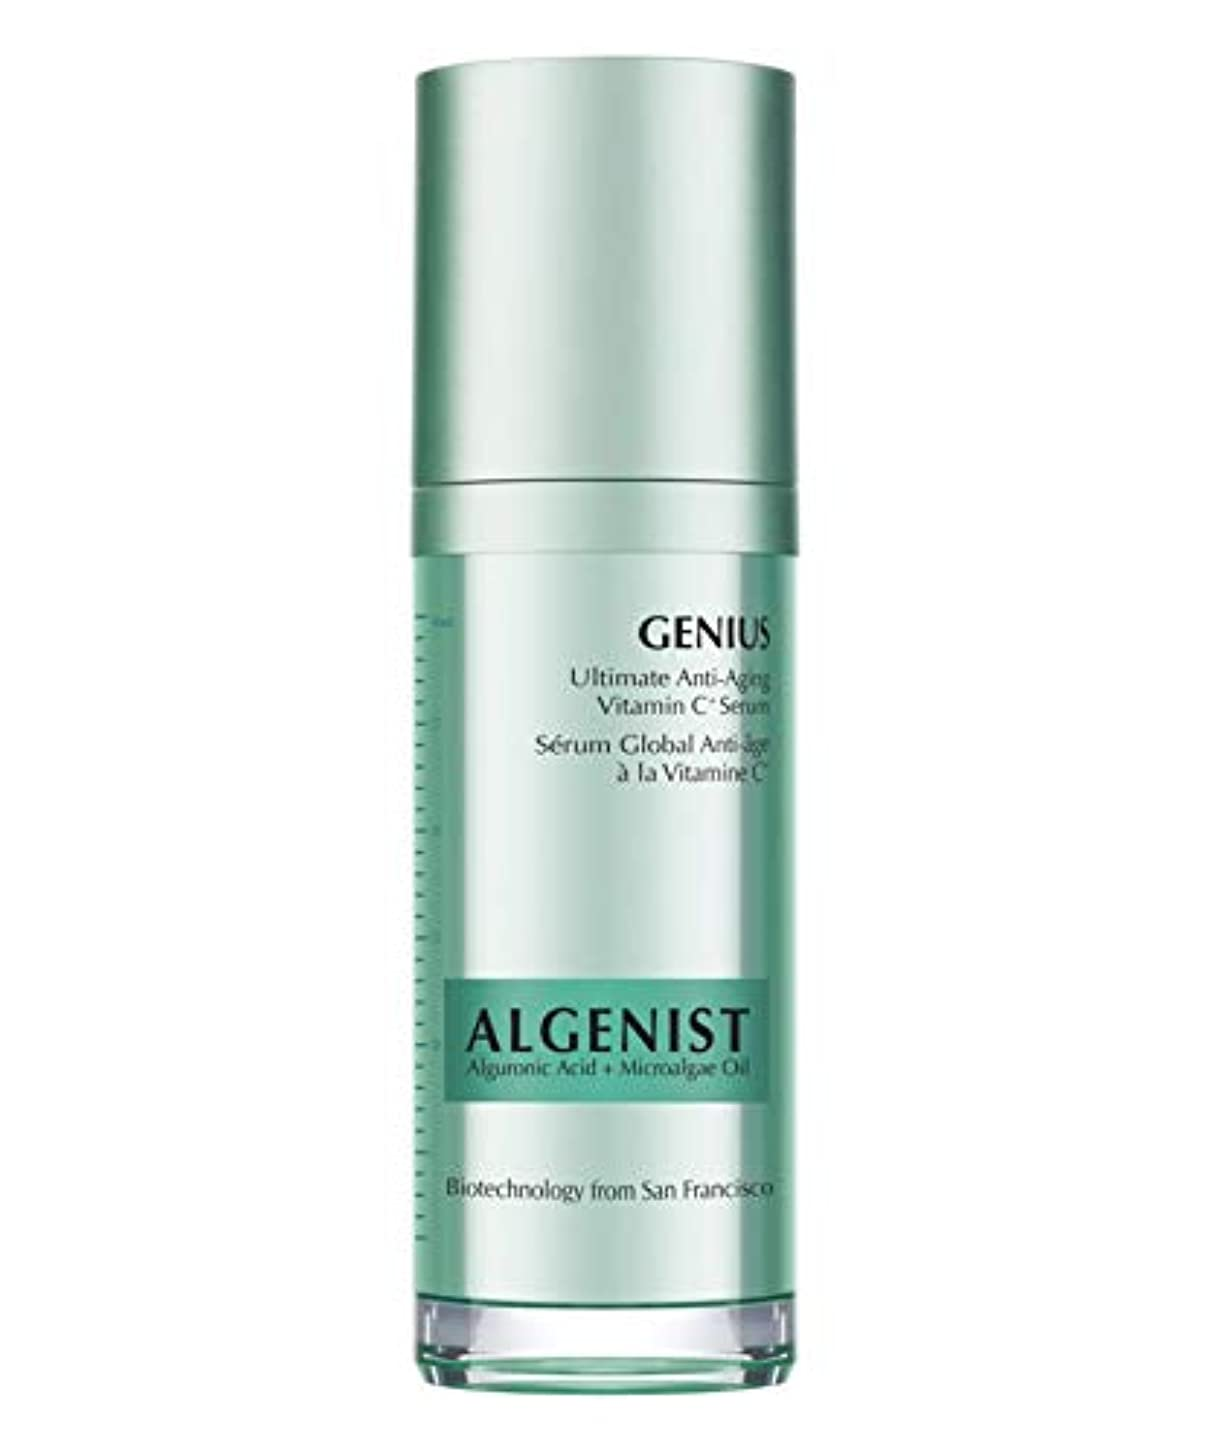 リボン縁石かき混ぜるAlgenist Genius Ultimate Anti-Aging Vitamin C Serum 30ml